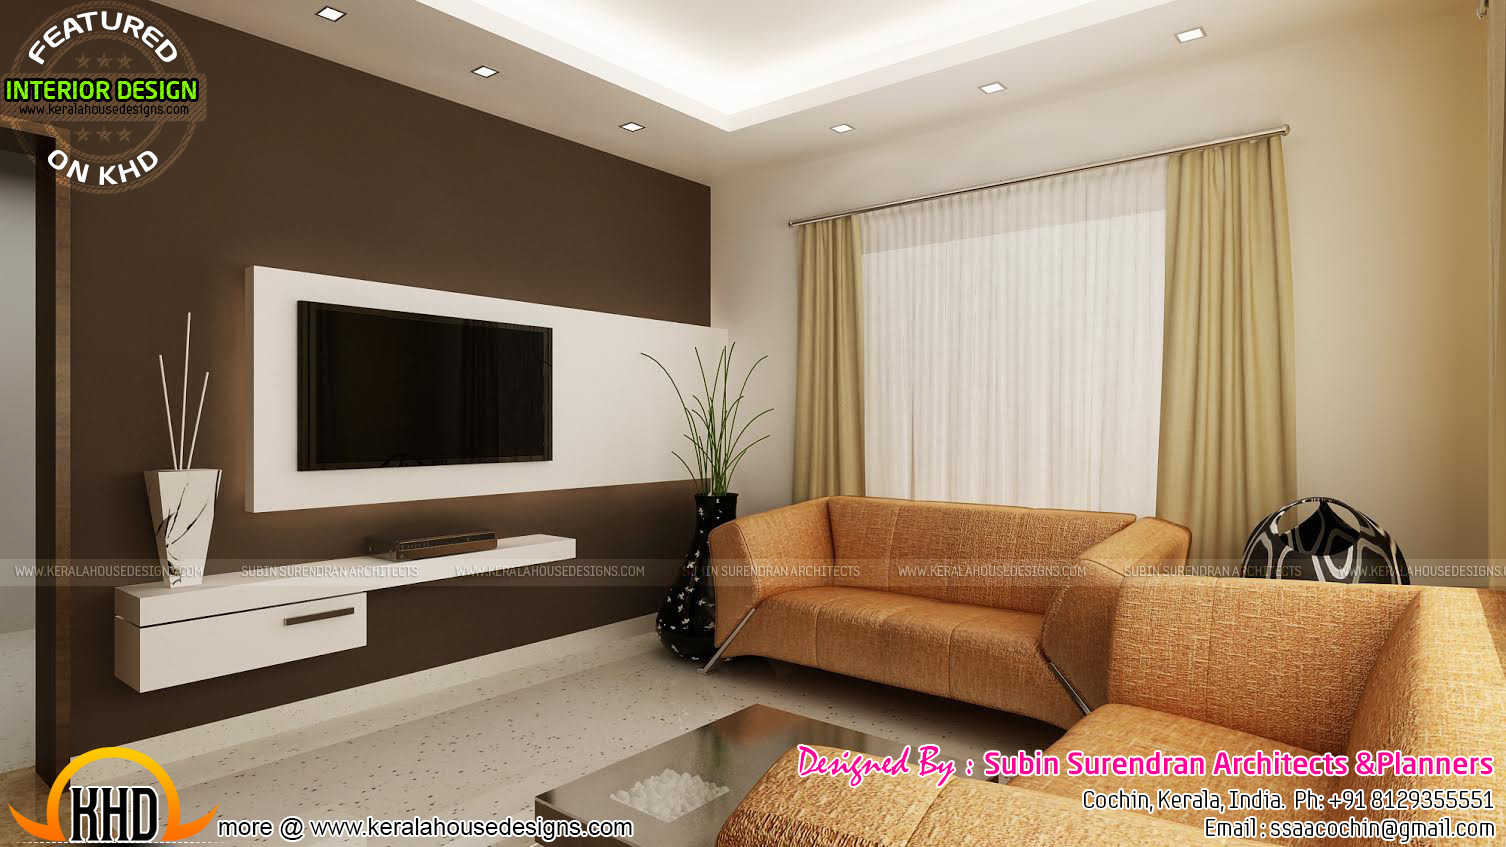 Living rooms, modern kitchen interiors in Kerala - Kerala ...